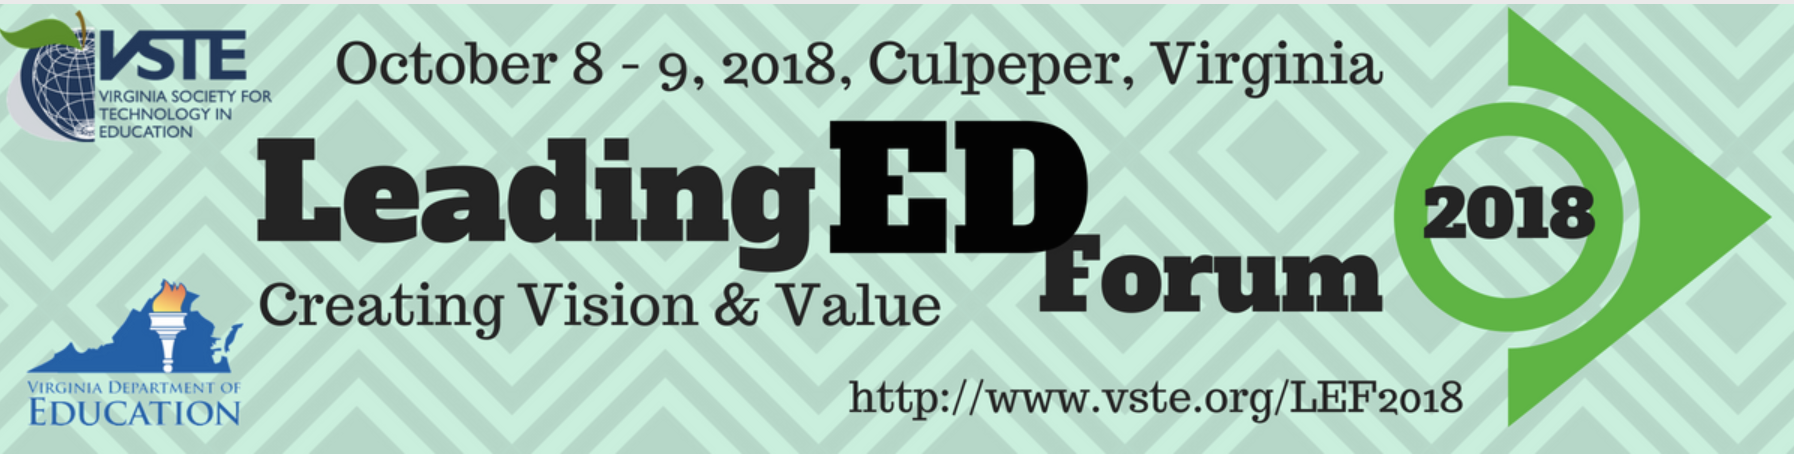 VSTE Leading Ed Forum 2018